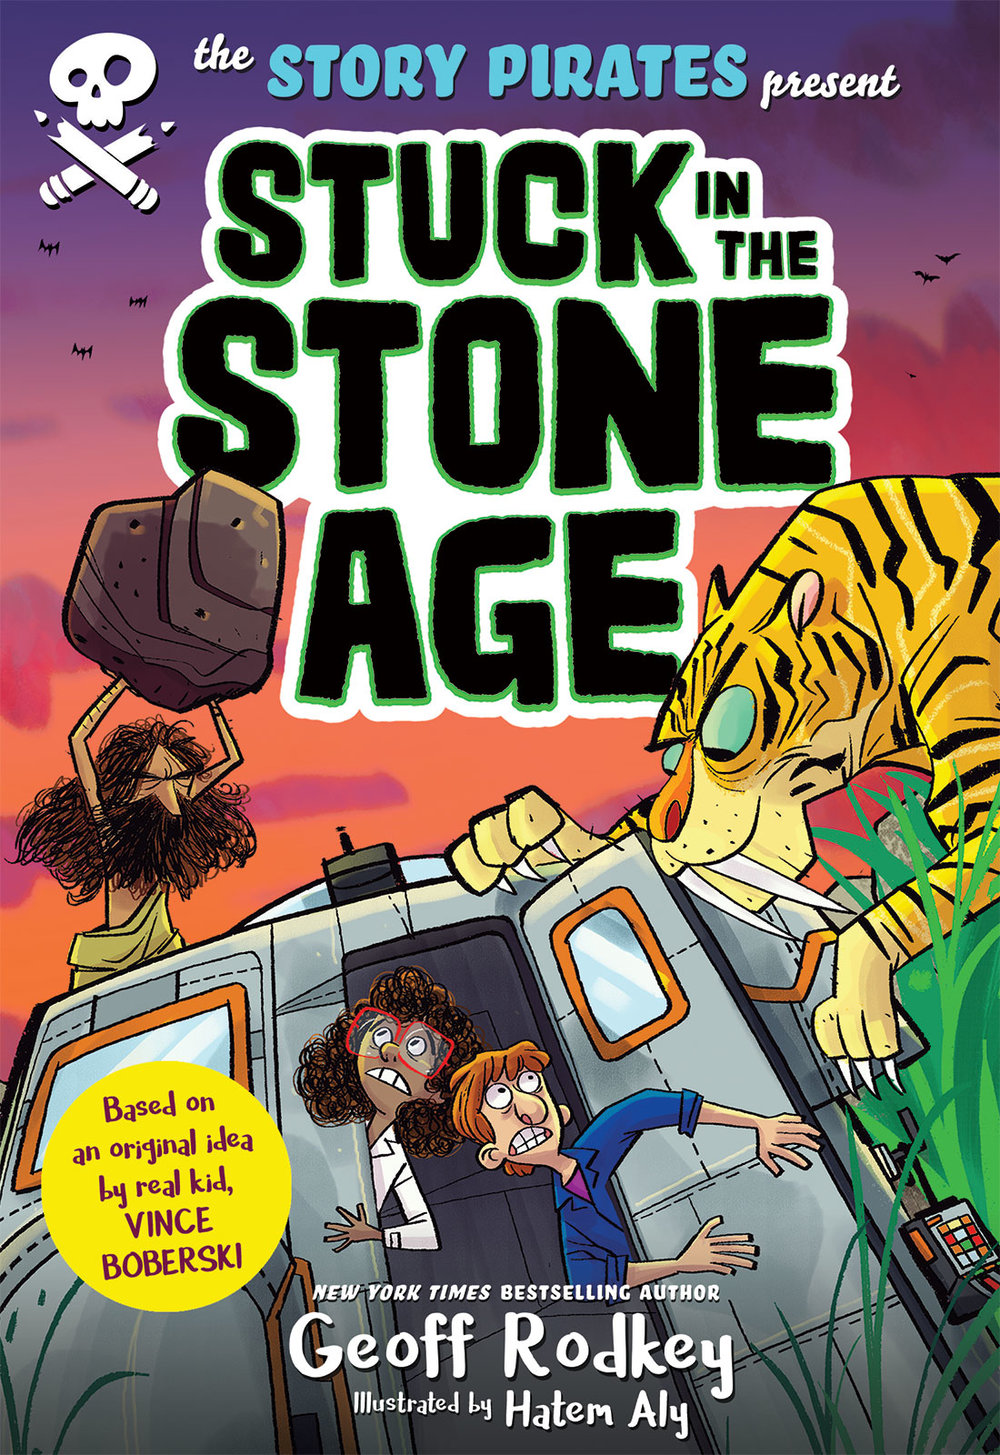 Stuck in the Stone Age will be released in March 2018 by Rodale Kids, an imprint of Macmillan Publishing.